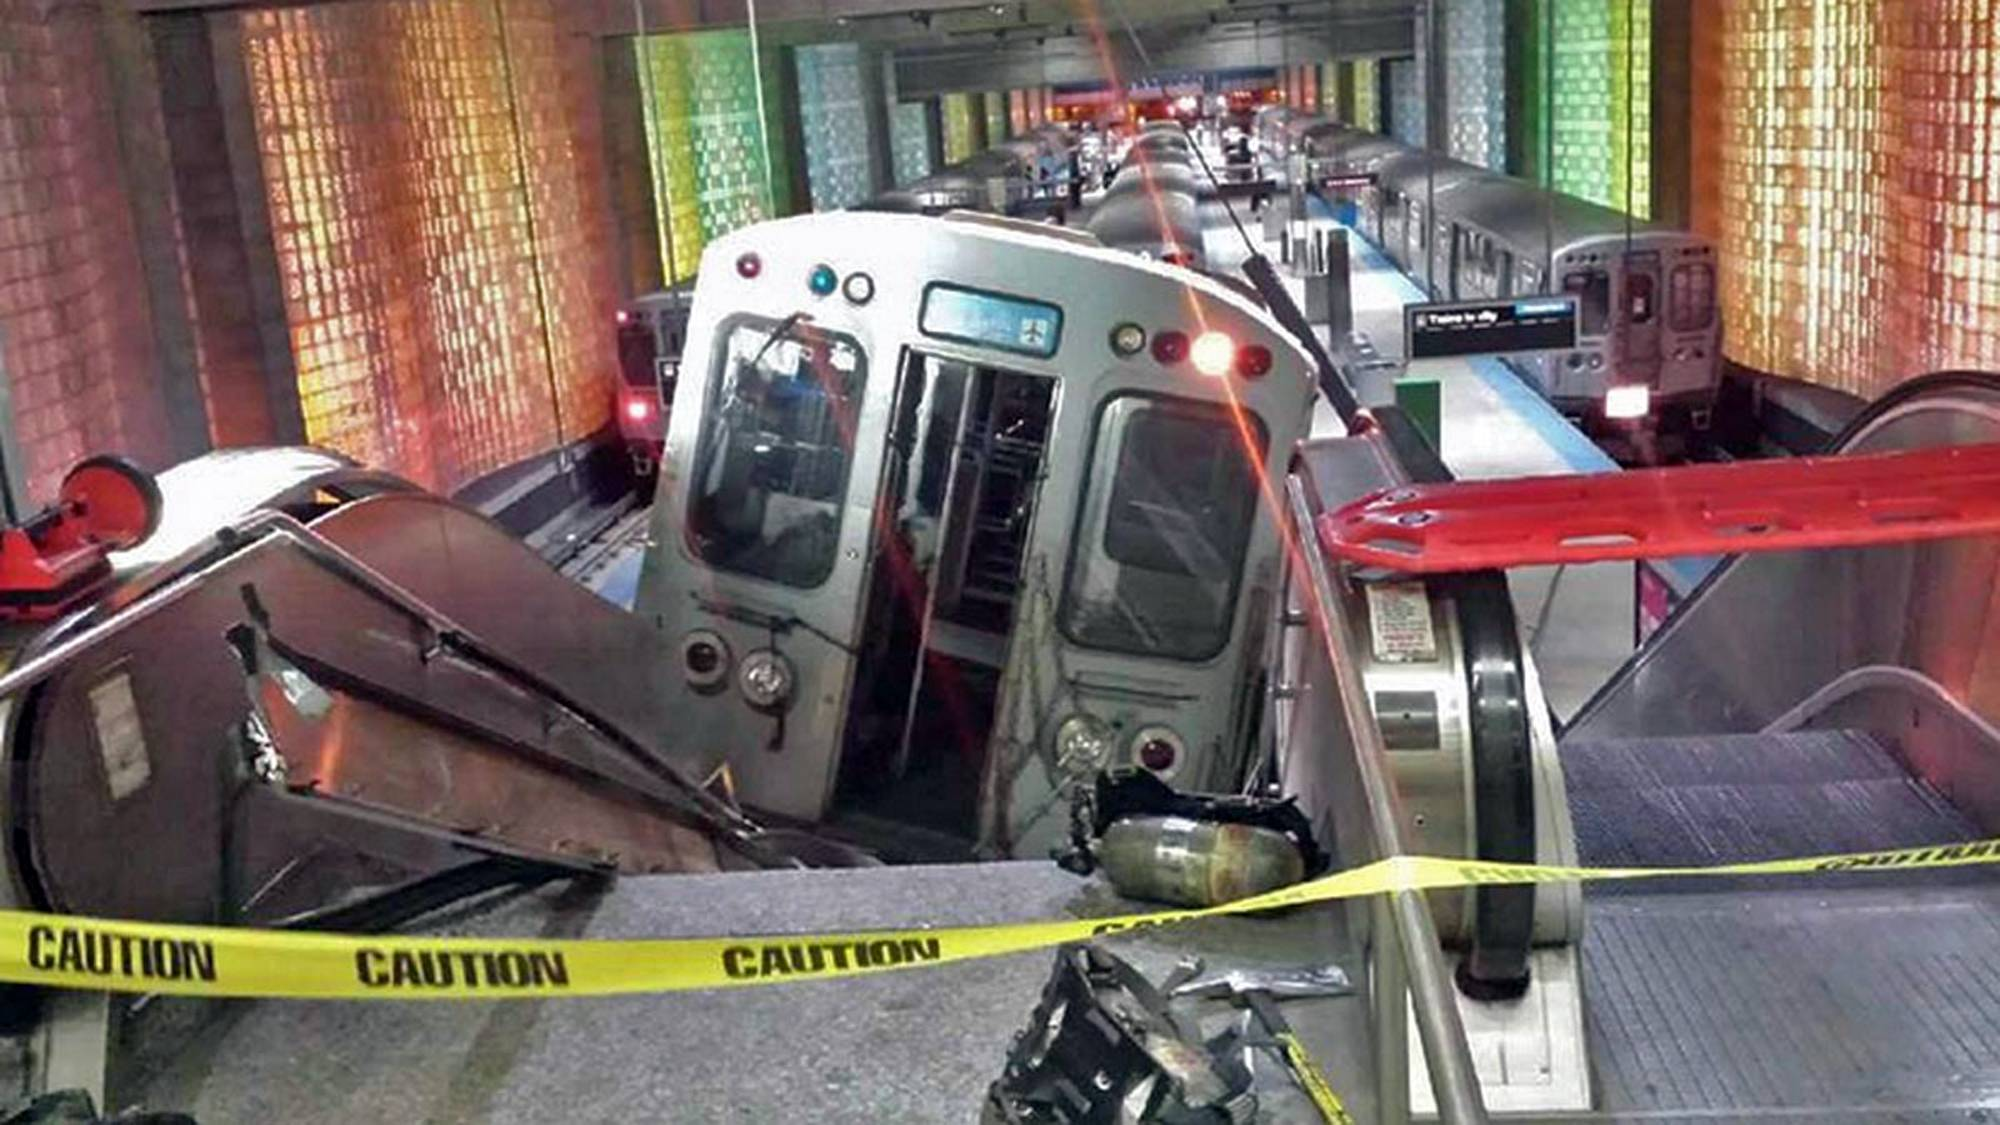 Train too fast for brakes to stop crash at O'Hare: report